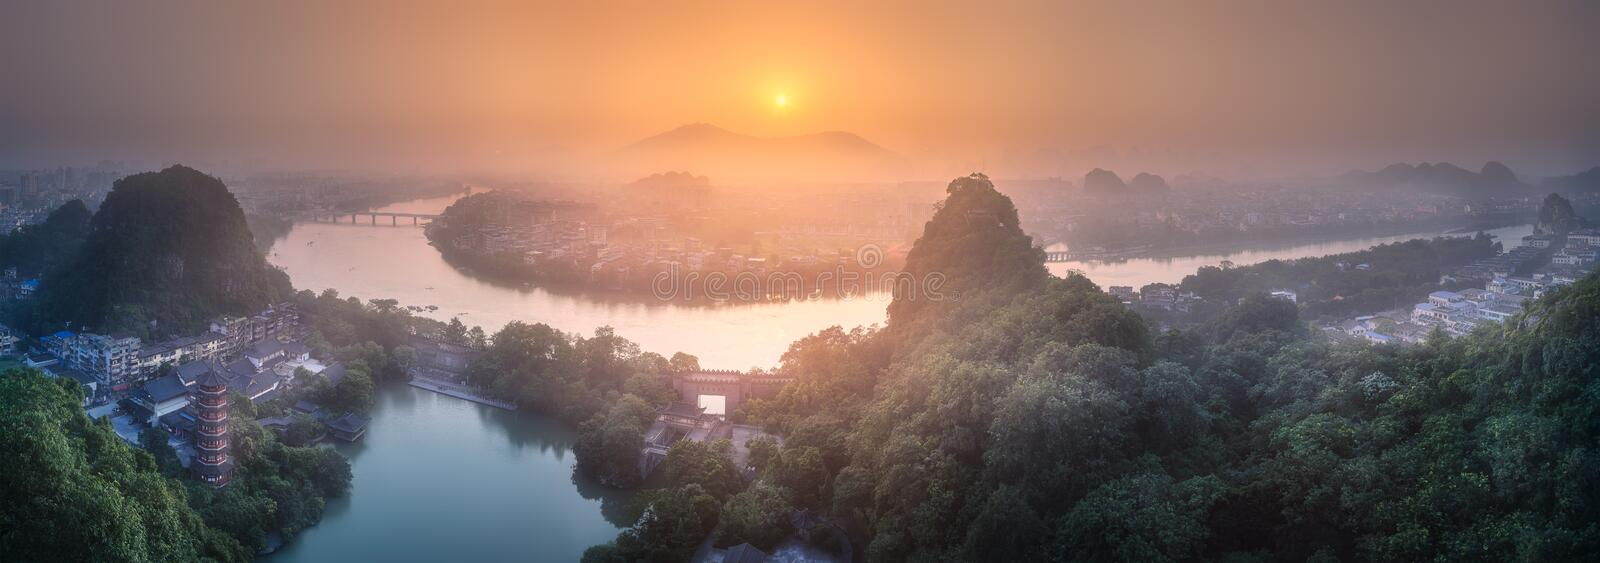 Download Li River And Karst Mountains Guilin, Yangshuo Stock Photo - Image of mountain, karst: 108912768